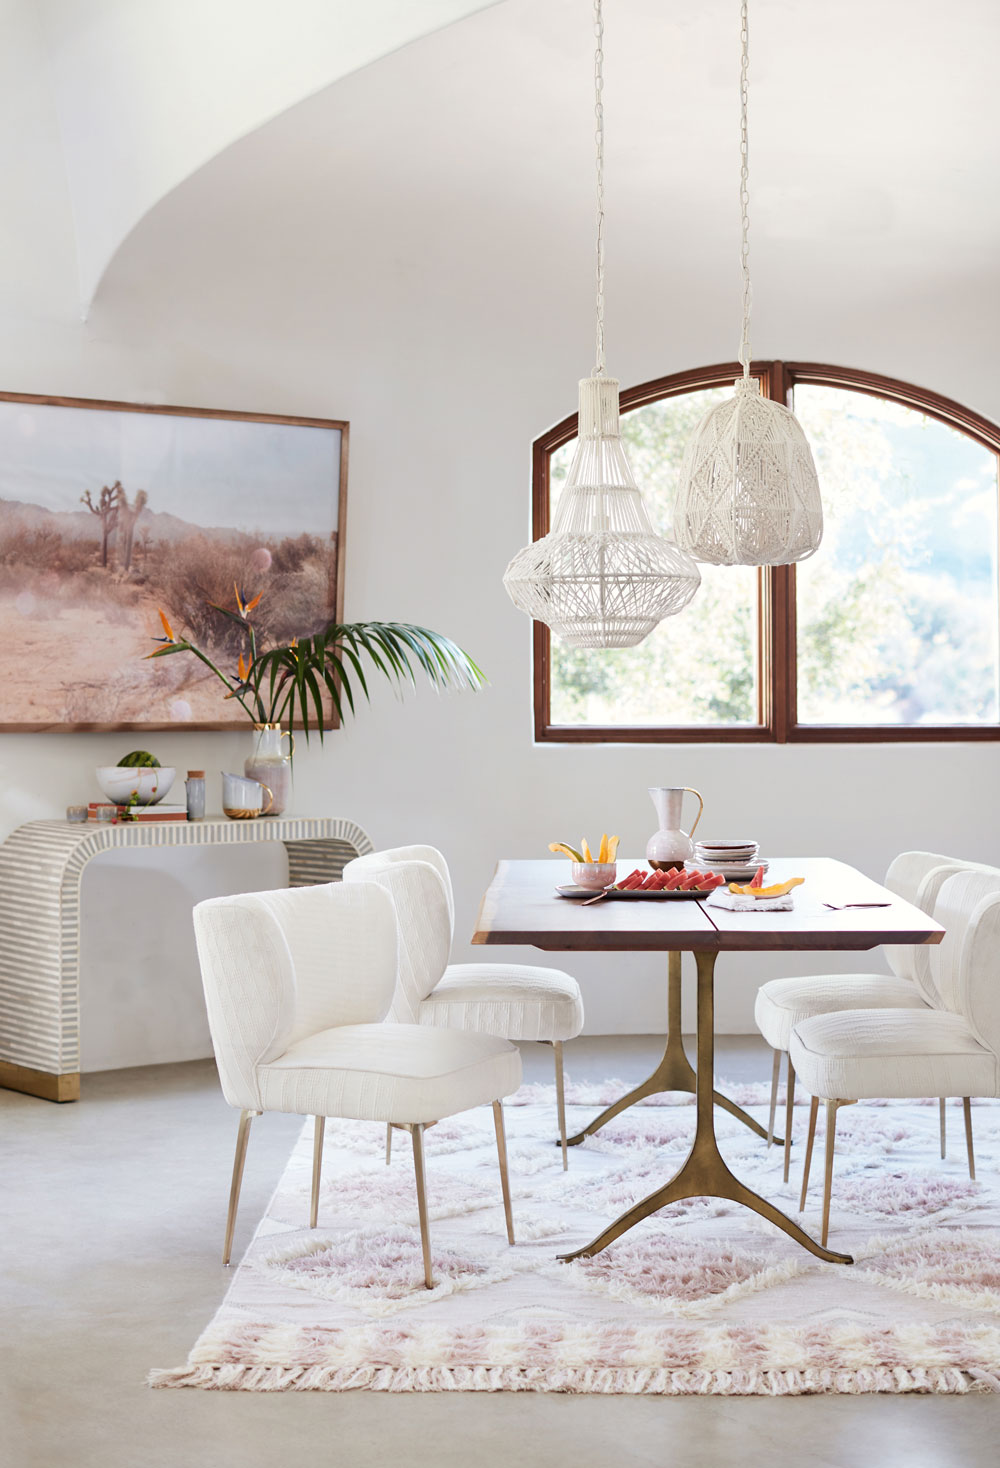 Today I'm sharing new pieces from the Anthropologie spring summer 2018 lookbook, designed to make you swoon, from statement mid-century furniture to a subtle pastel colour palette.